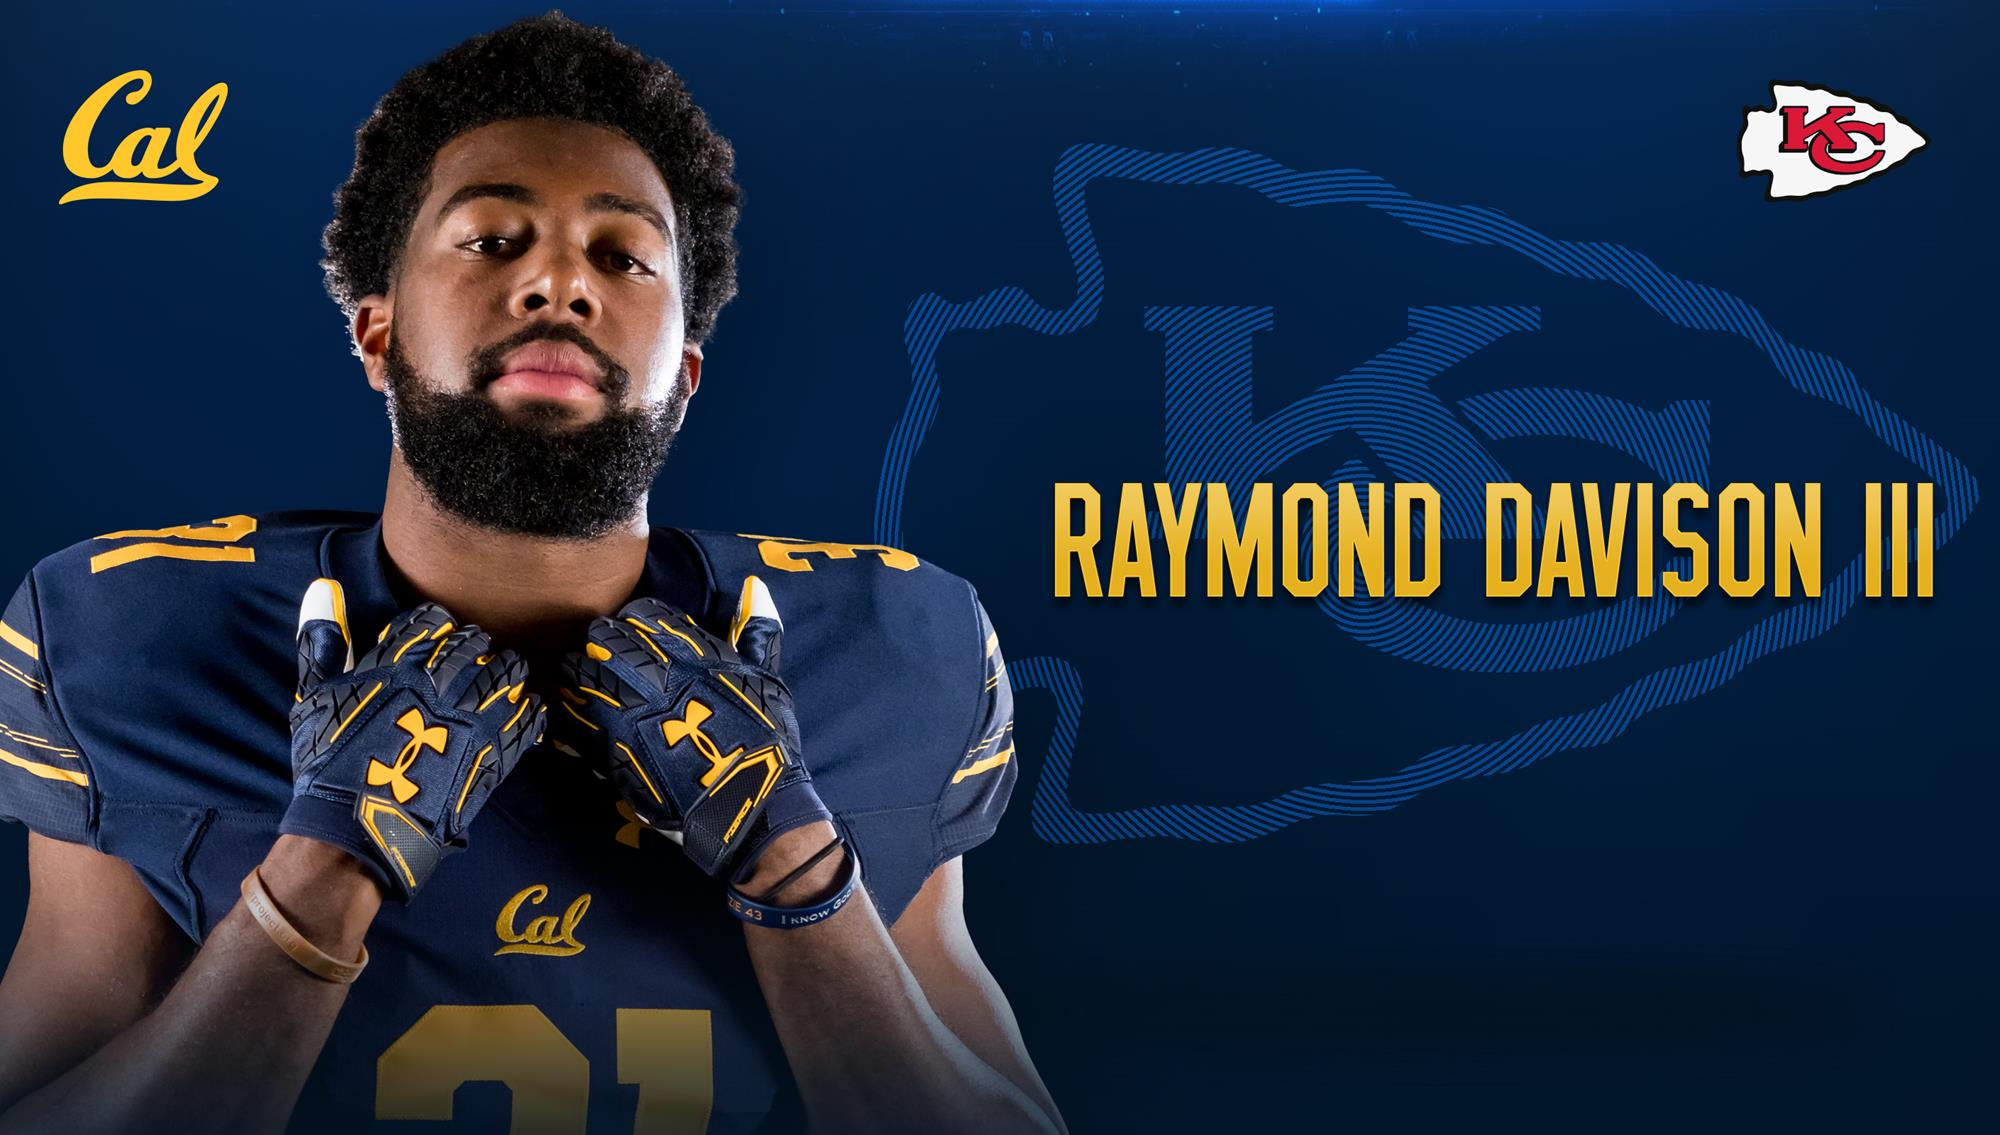 kansas city signs raymond davison iii university of california